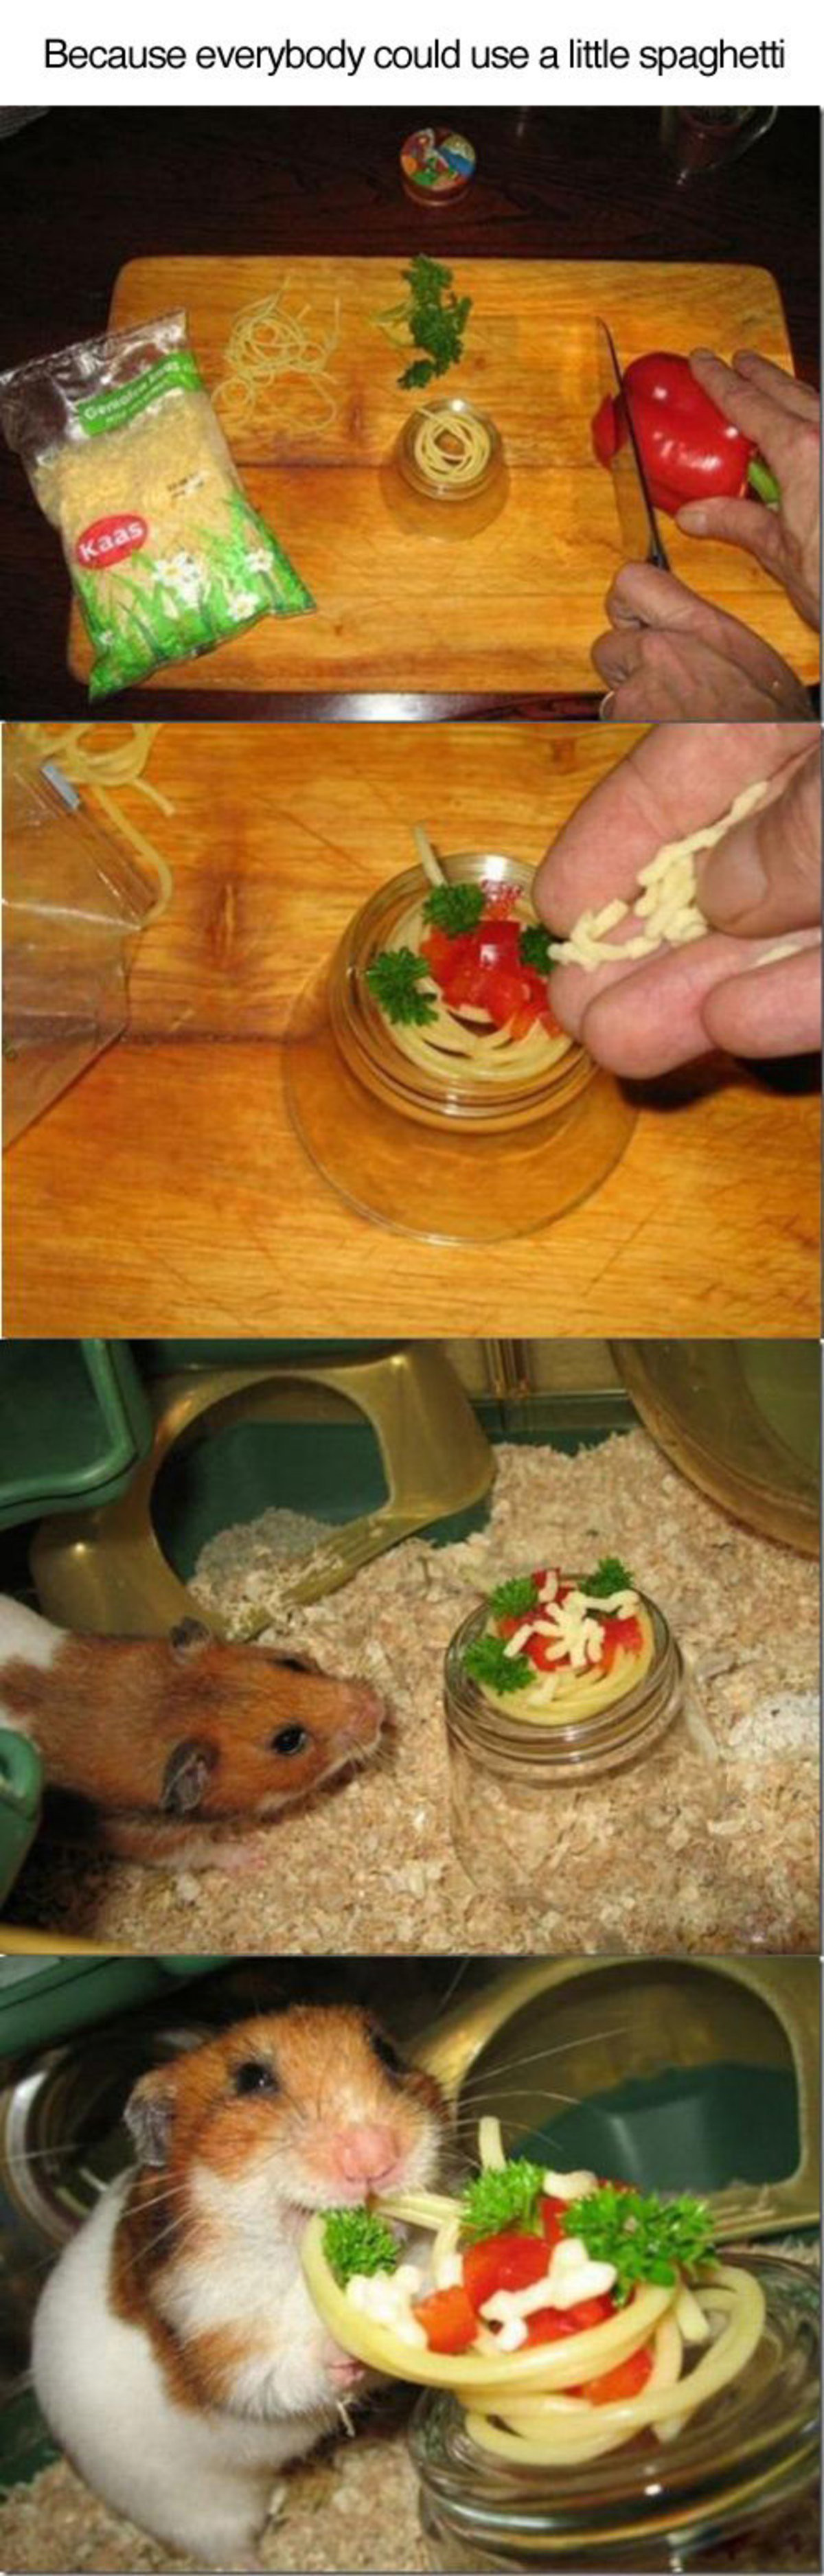 Hamster Restaurant. join list: CuteThings (242 subs)Mention History join list:. Probably isn't good for him, but so are a good amount of the things I eat. Everyone deserves a treat every now and then.